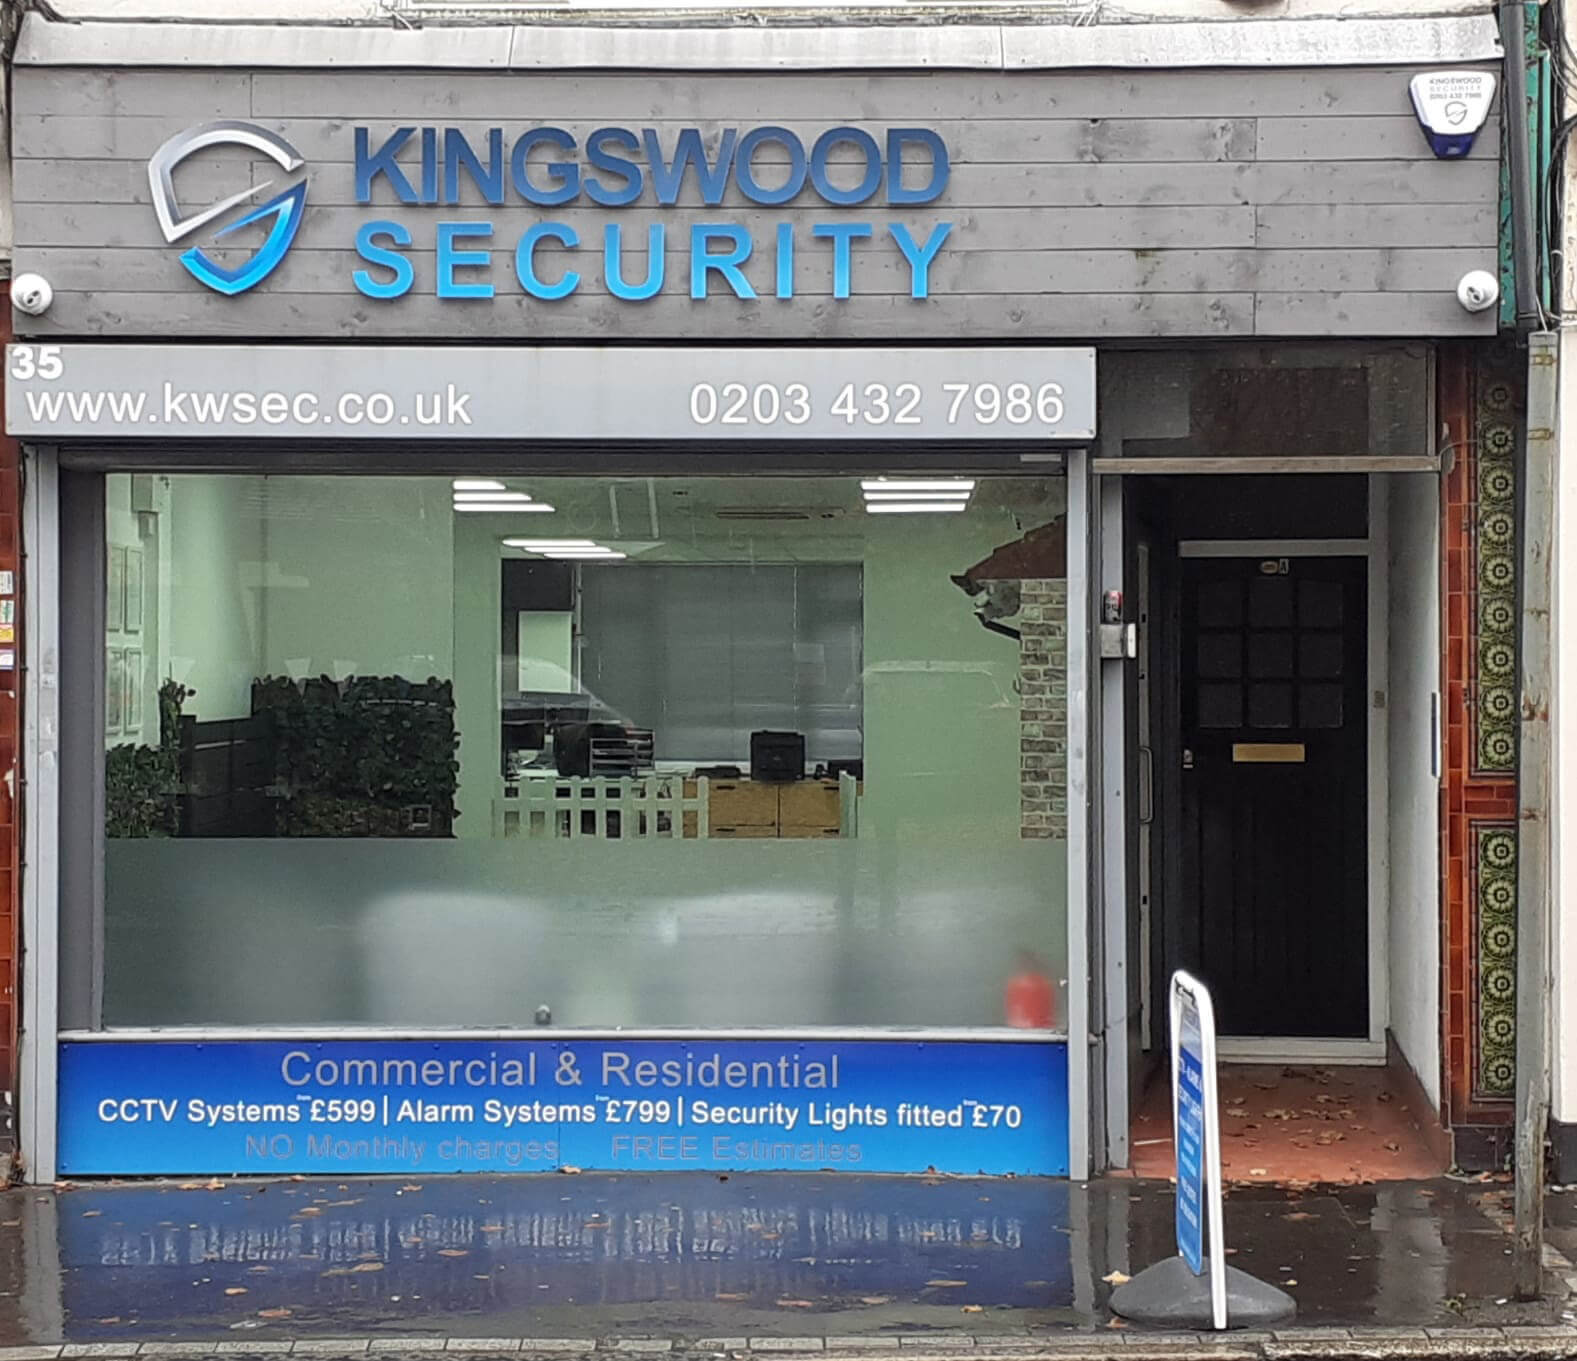 Kingswood Security in Coulsdon